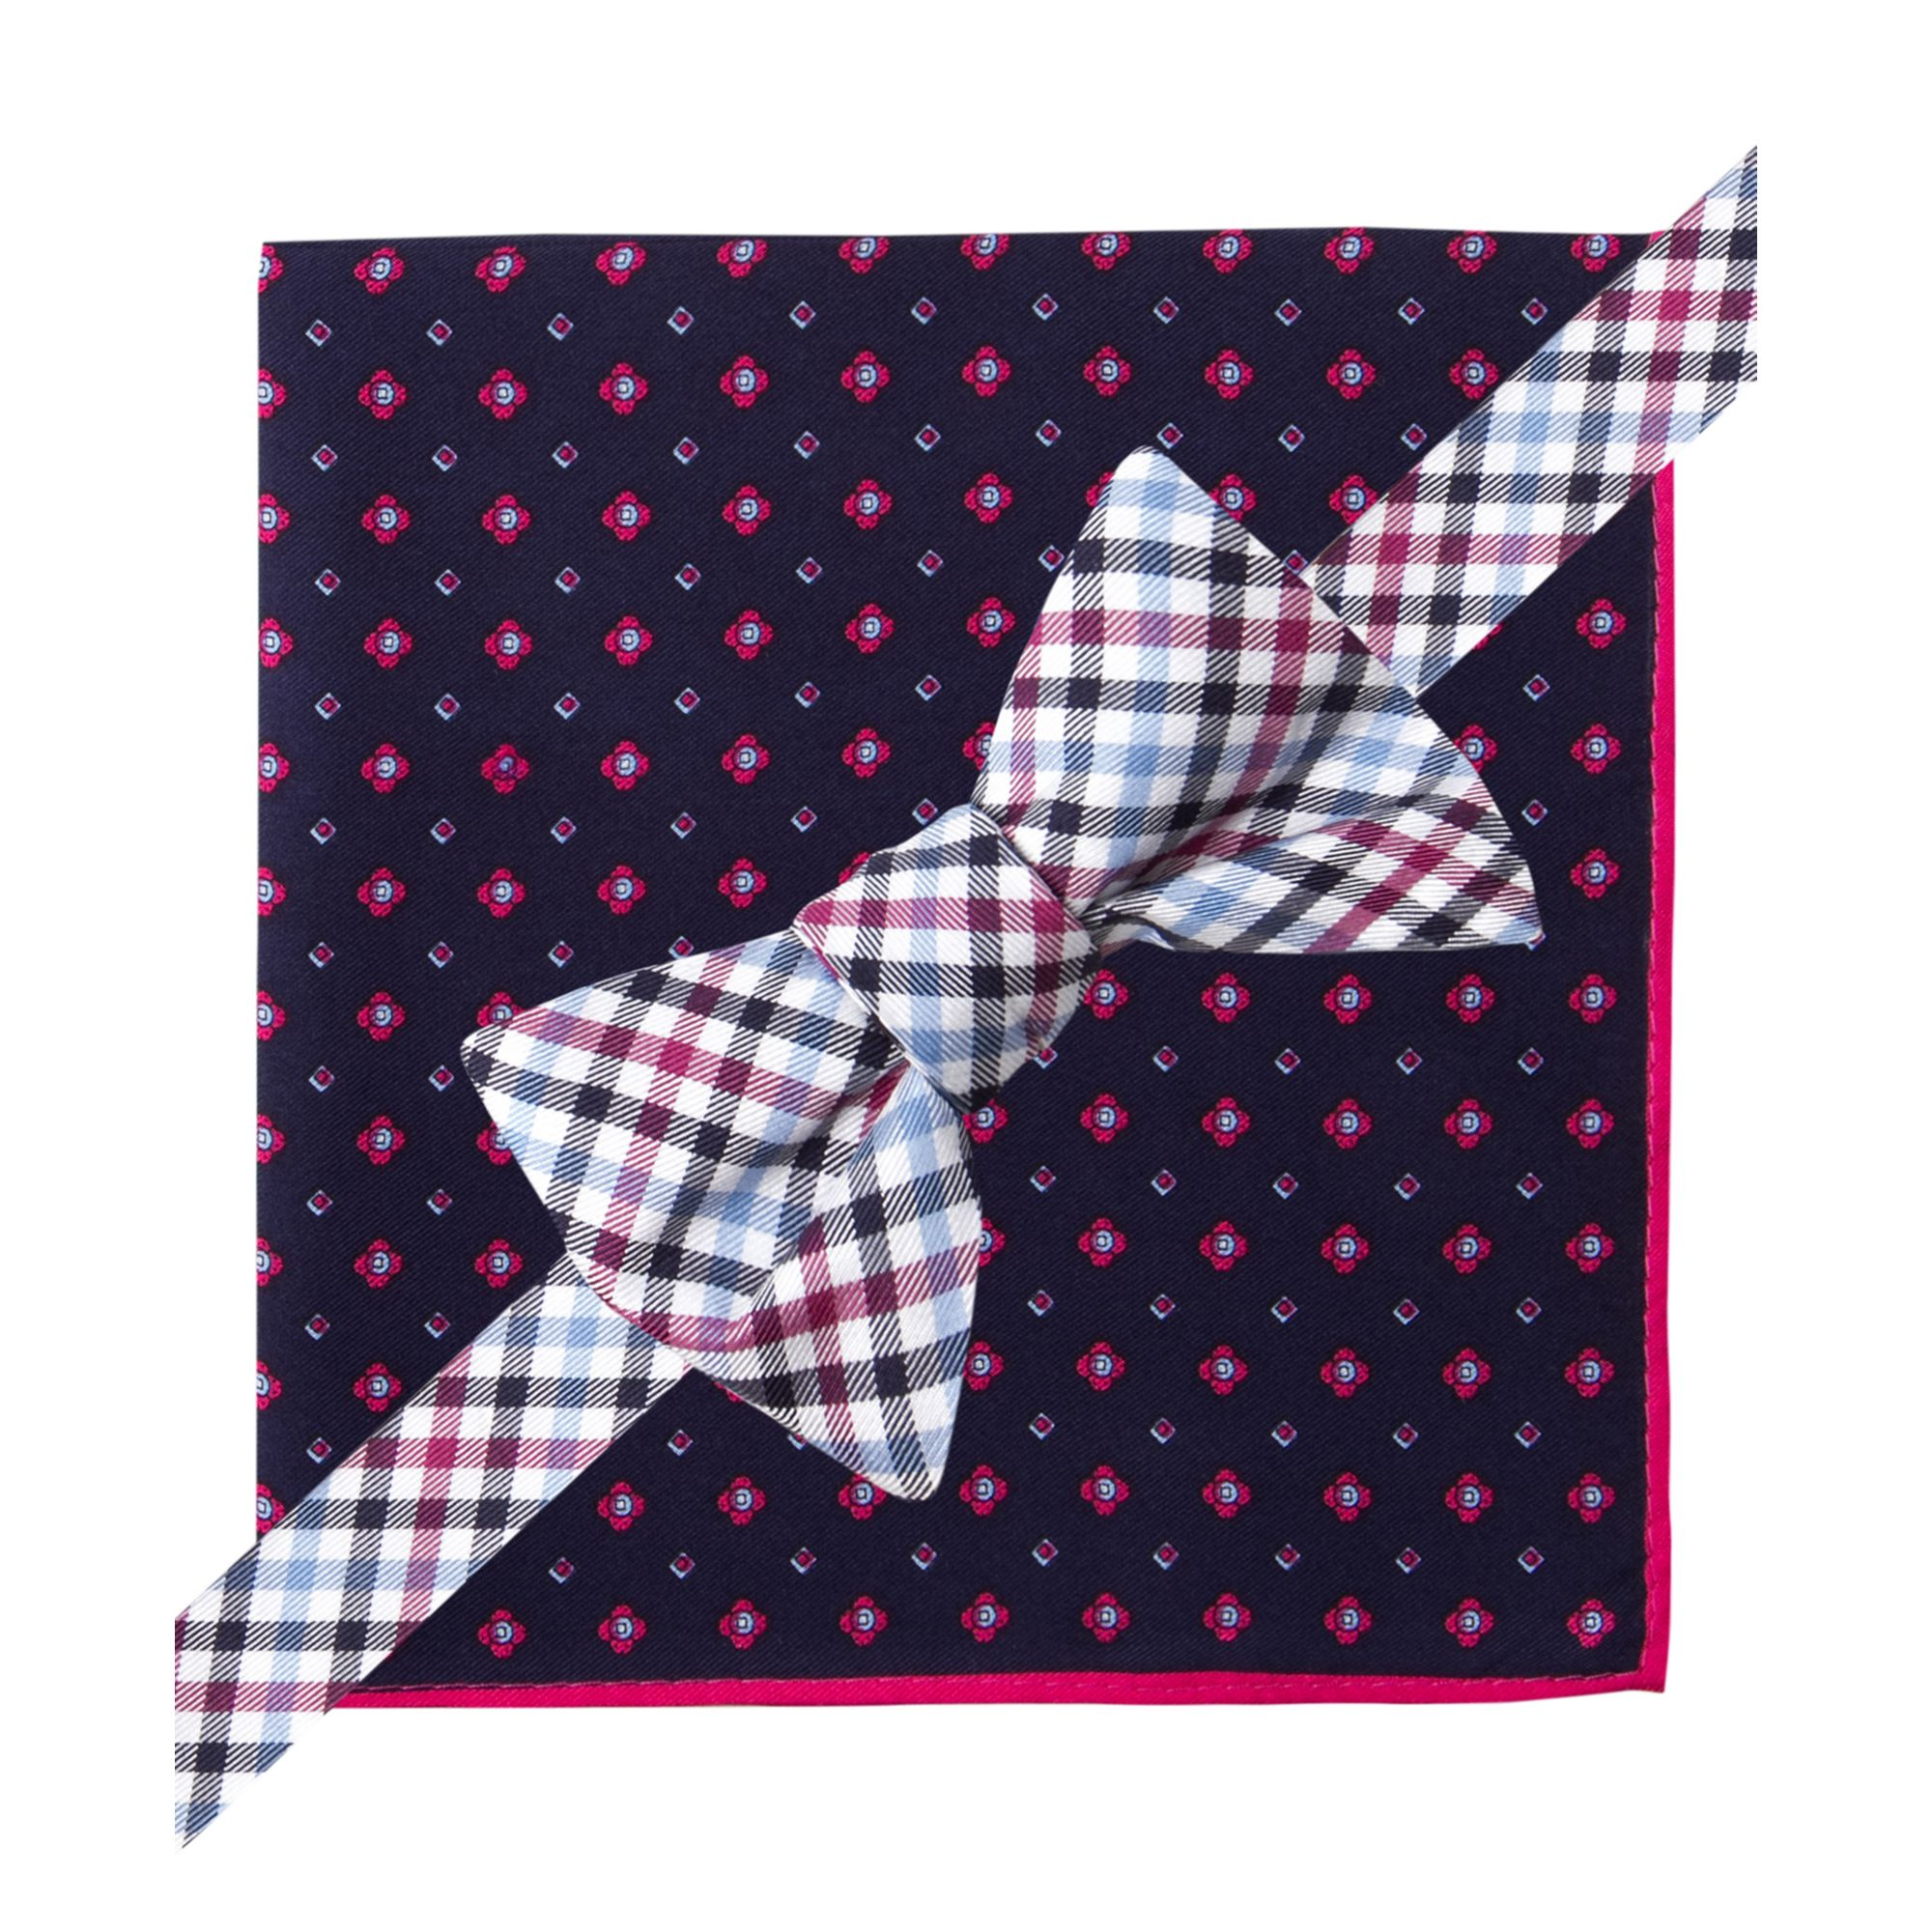 hilfiger gingham bow tie and neat pocket square set